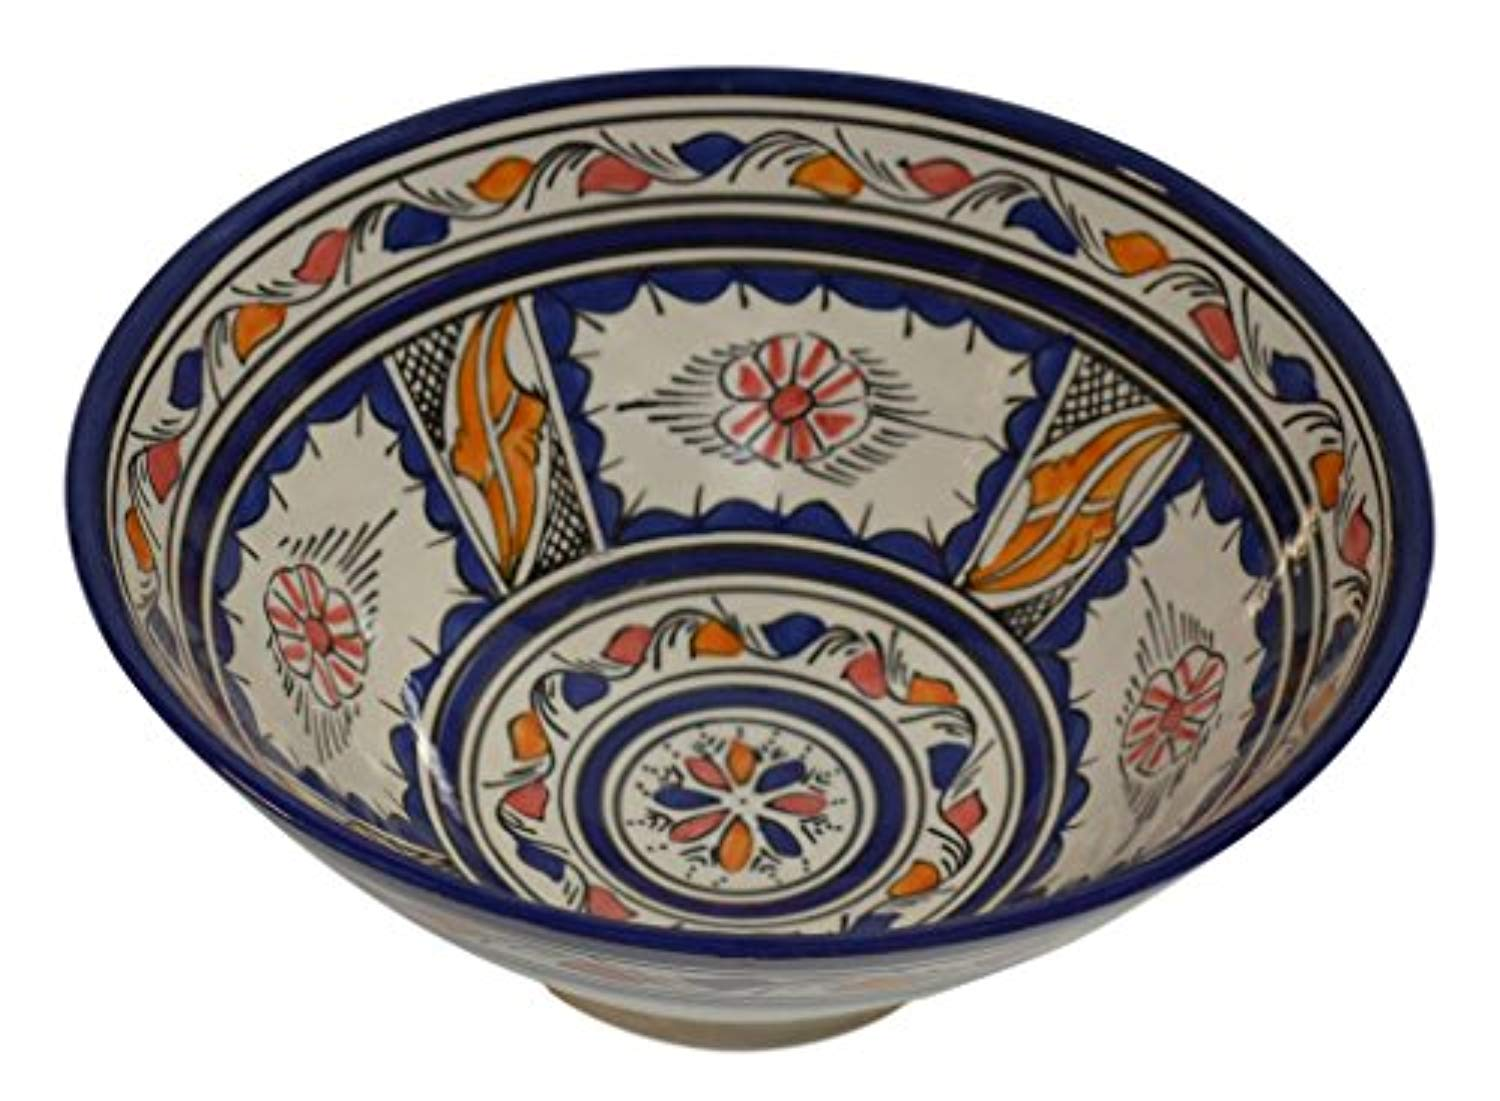 Ceramic Bowls Moroccan Handmade Serving Exquisite Piece With Vivid Colors 12 inches Across - Ufumbuzi - Home